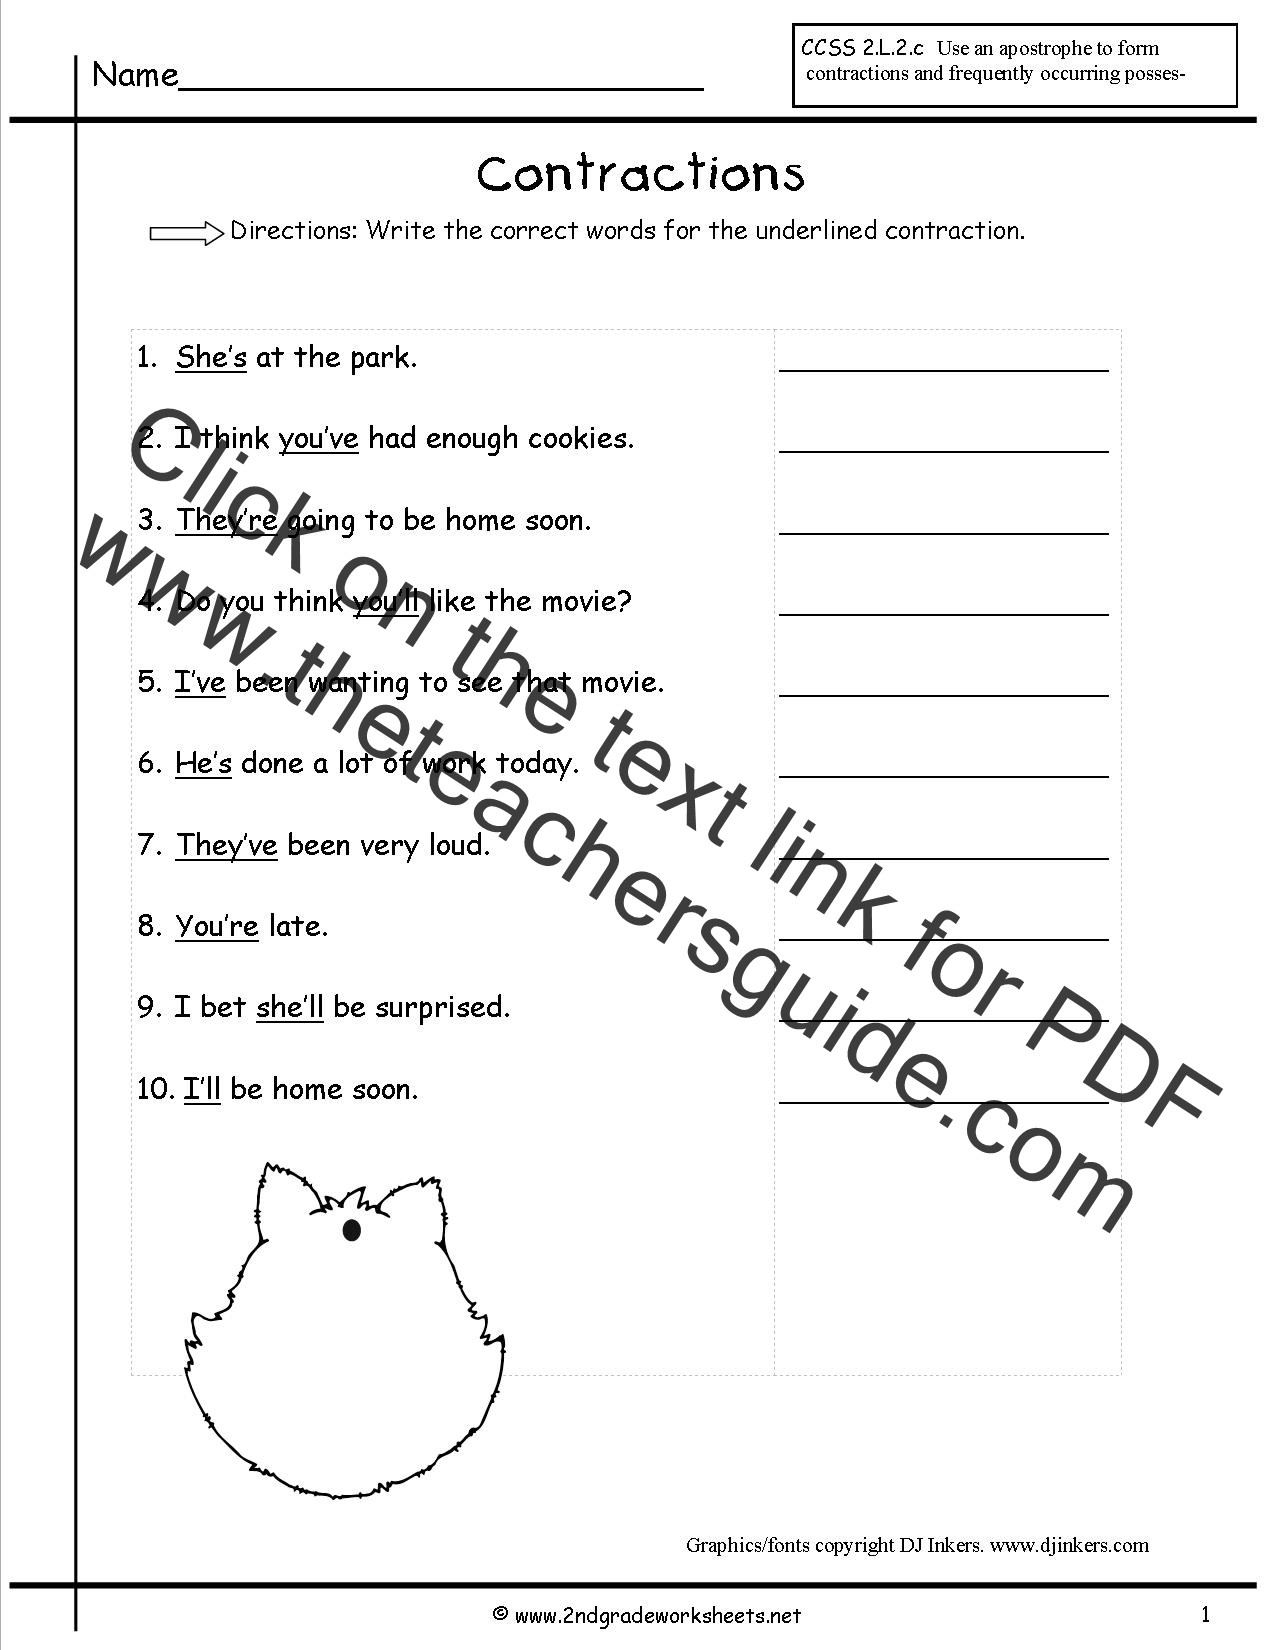 Free Printable Contraction Worksheets